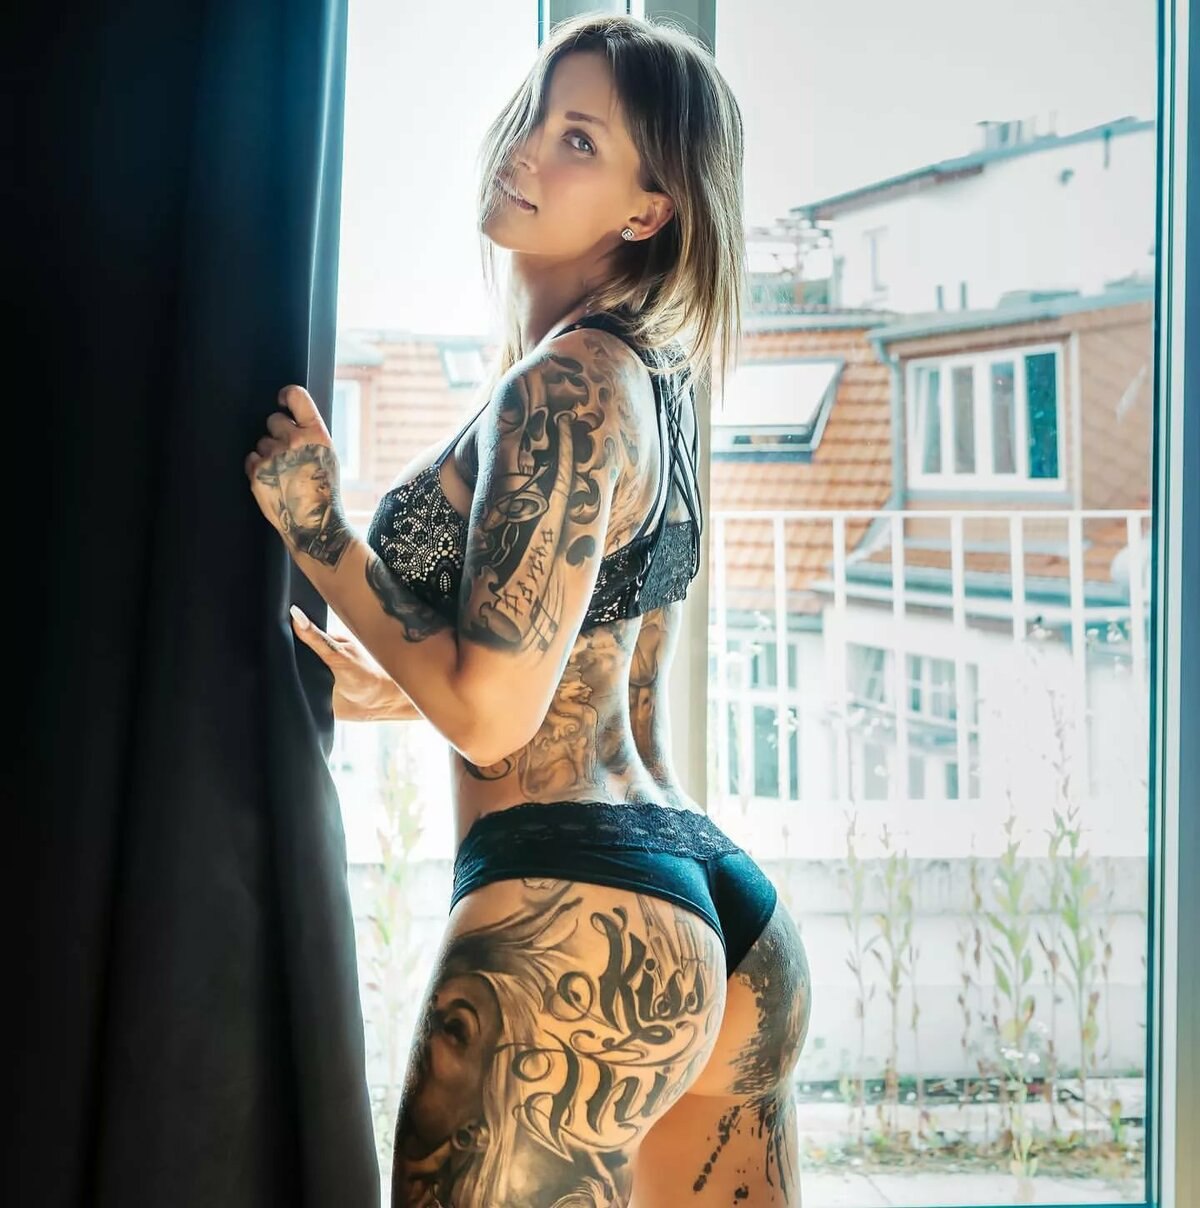 Beautiful athletic model with full body tattoos